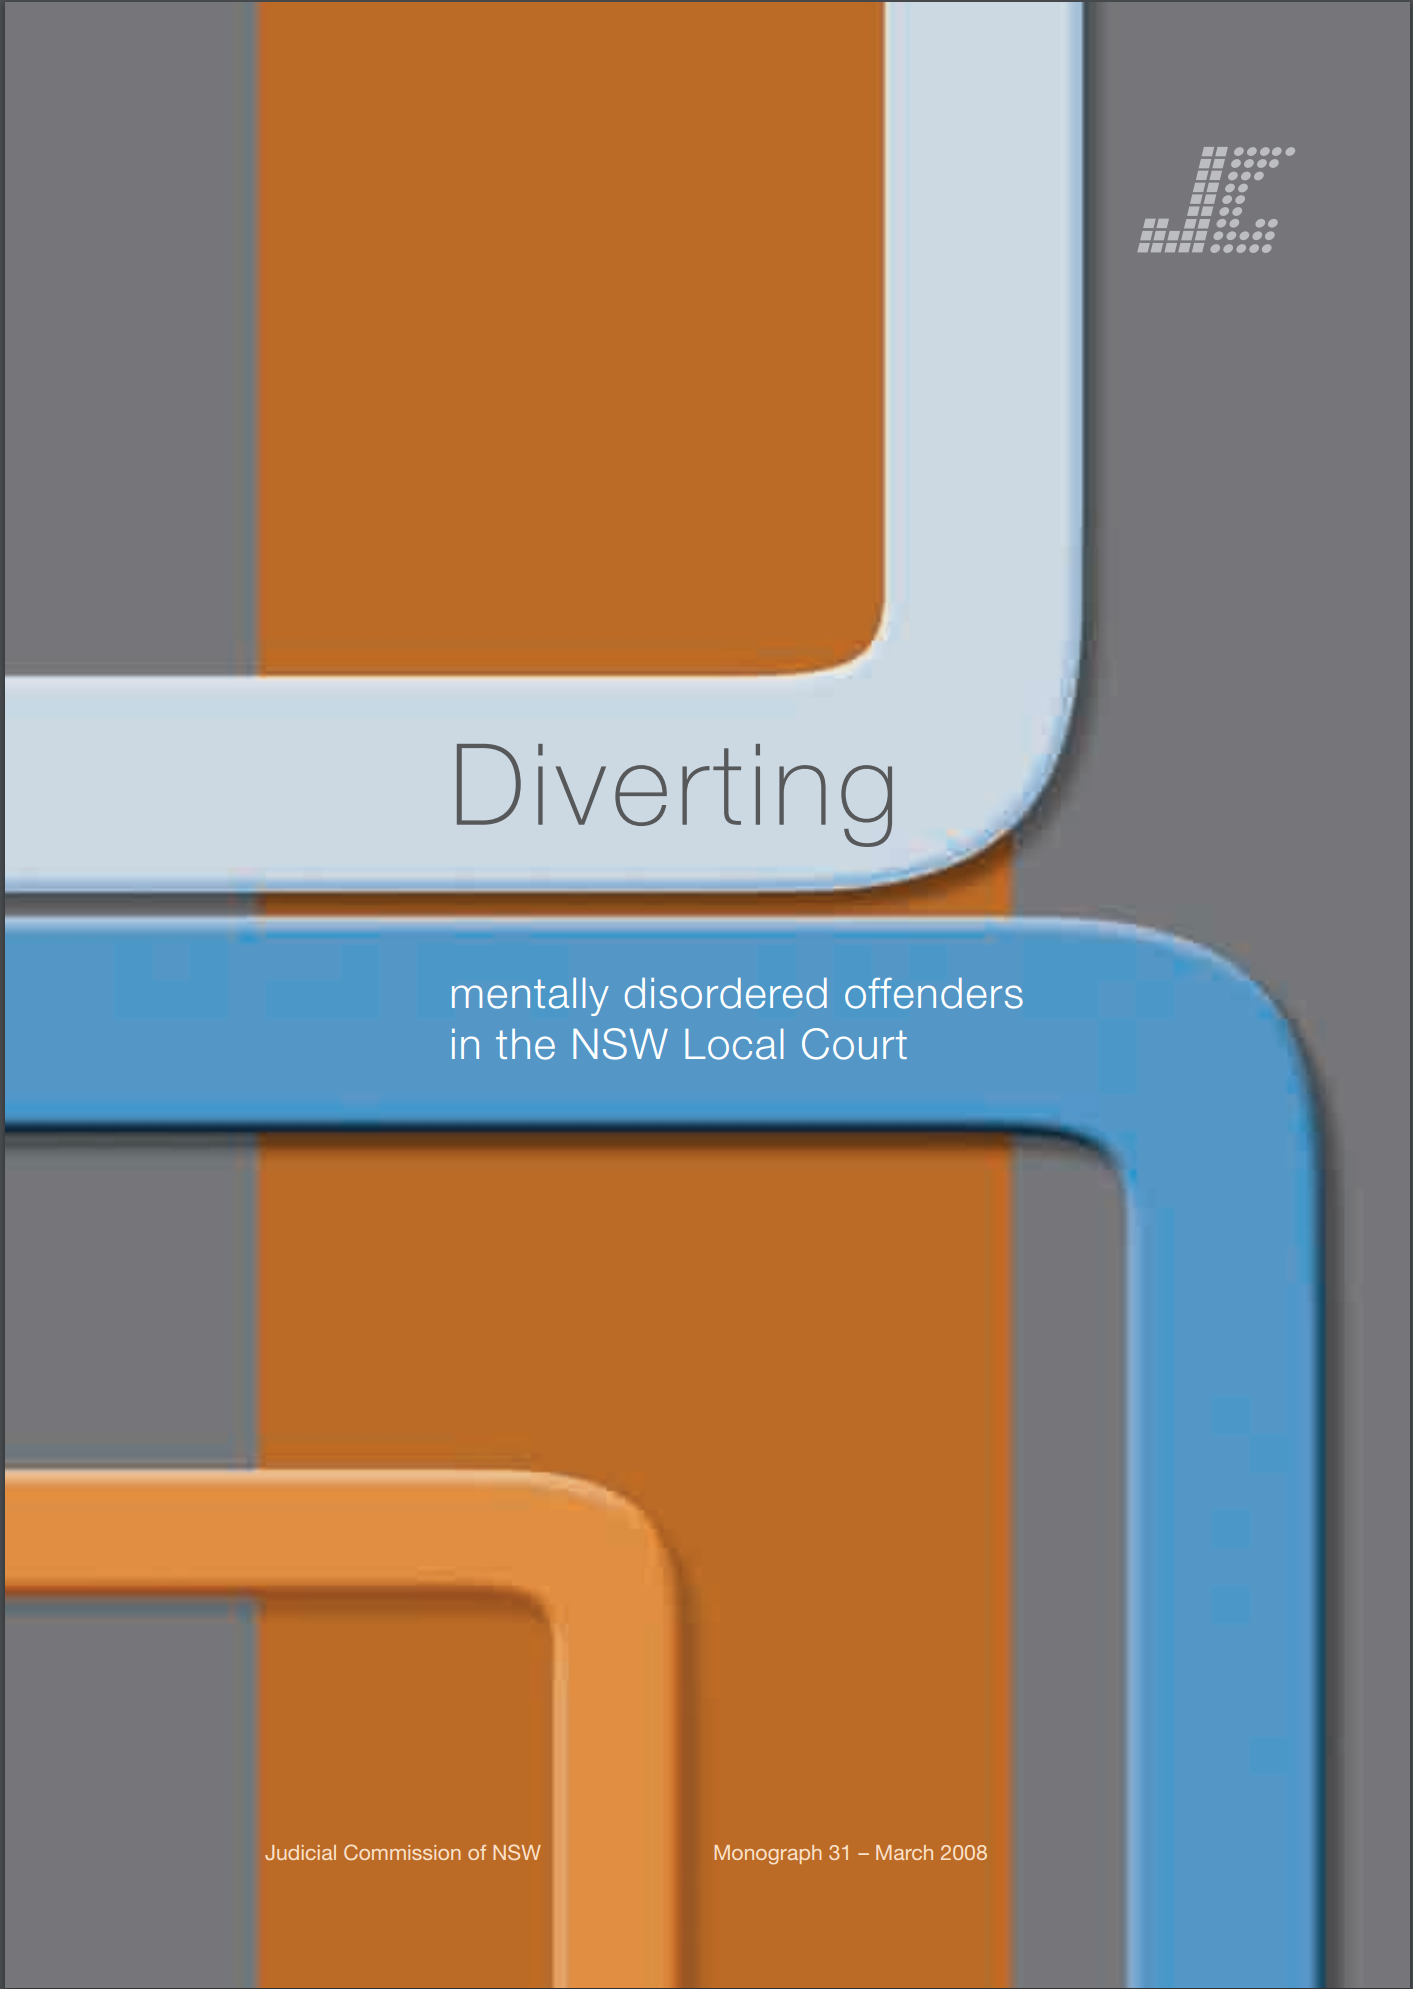 Research Monograph 31 Cover - Diverting mentally disordered offenders in the NSW Local Court